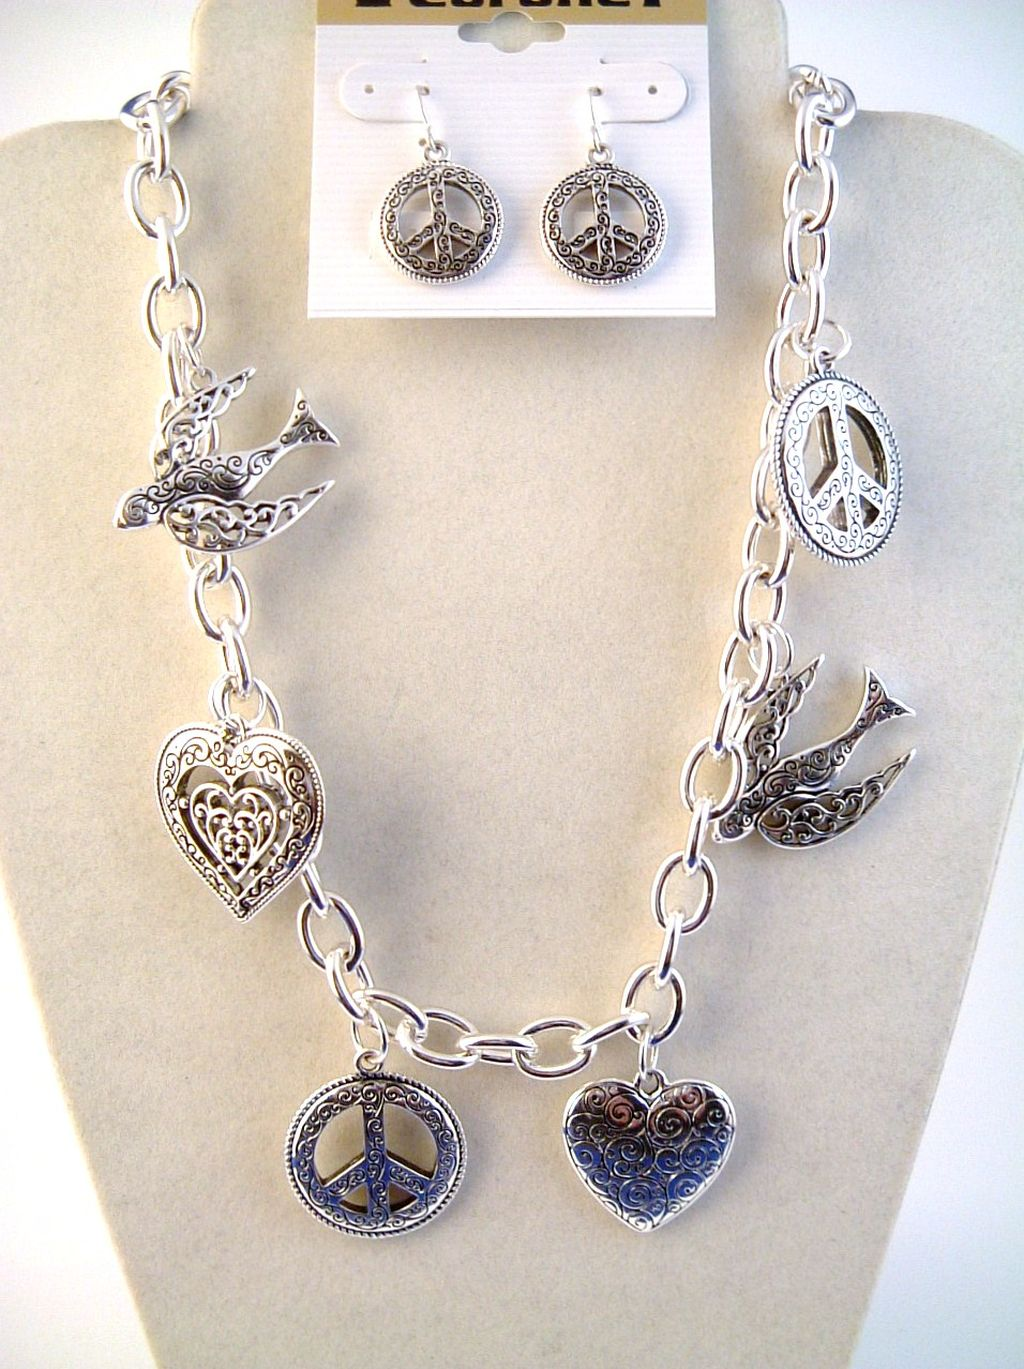 Peace Dove Heart Silver Charm Necklace Bracelet Earrings Jewelry Set